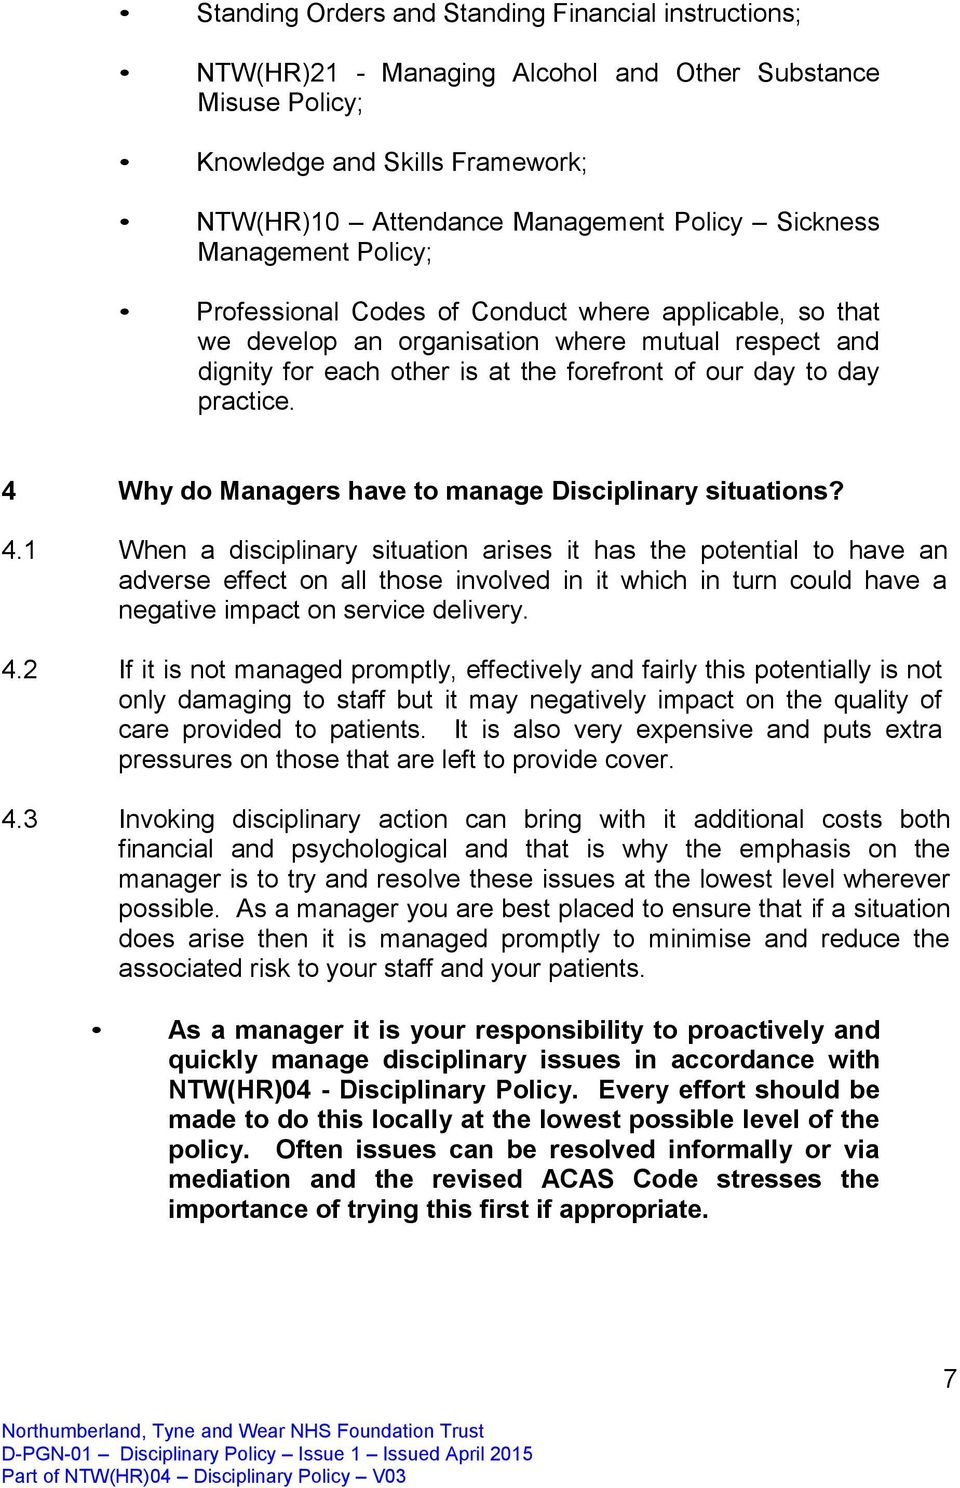 4 Why do Managers have to manage Disciplinary situations? 4.